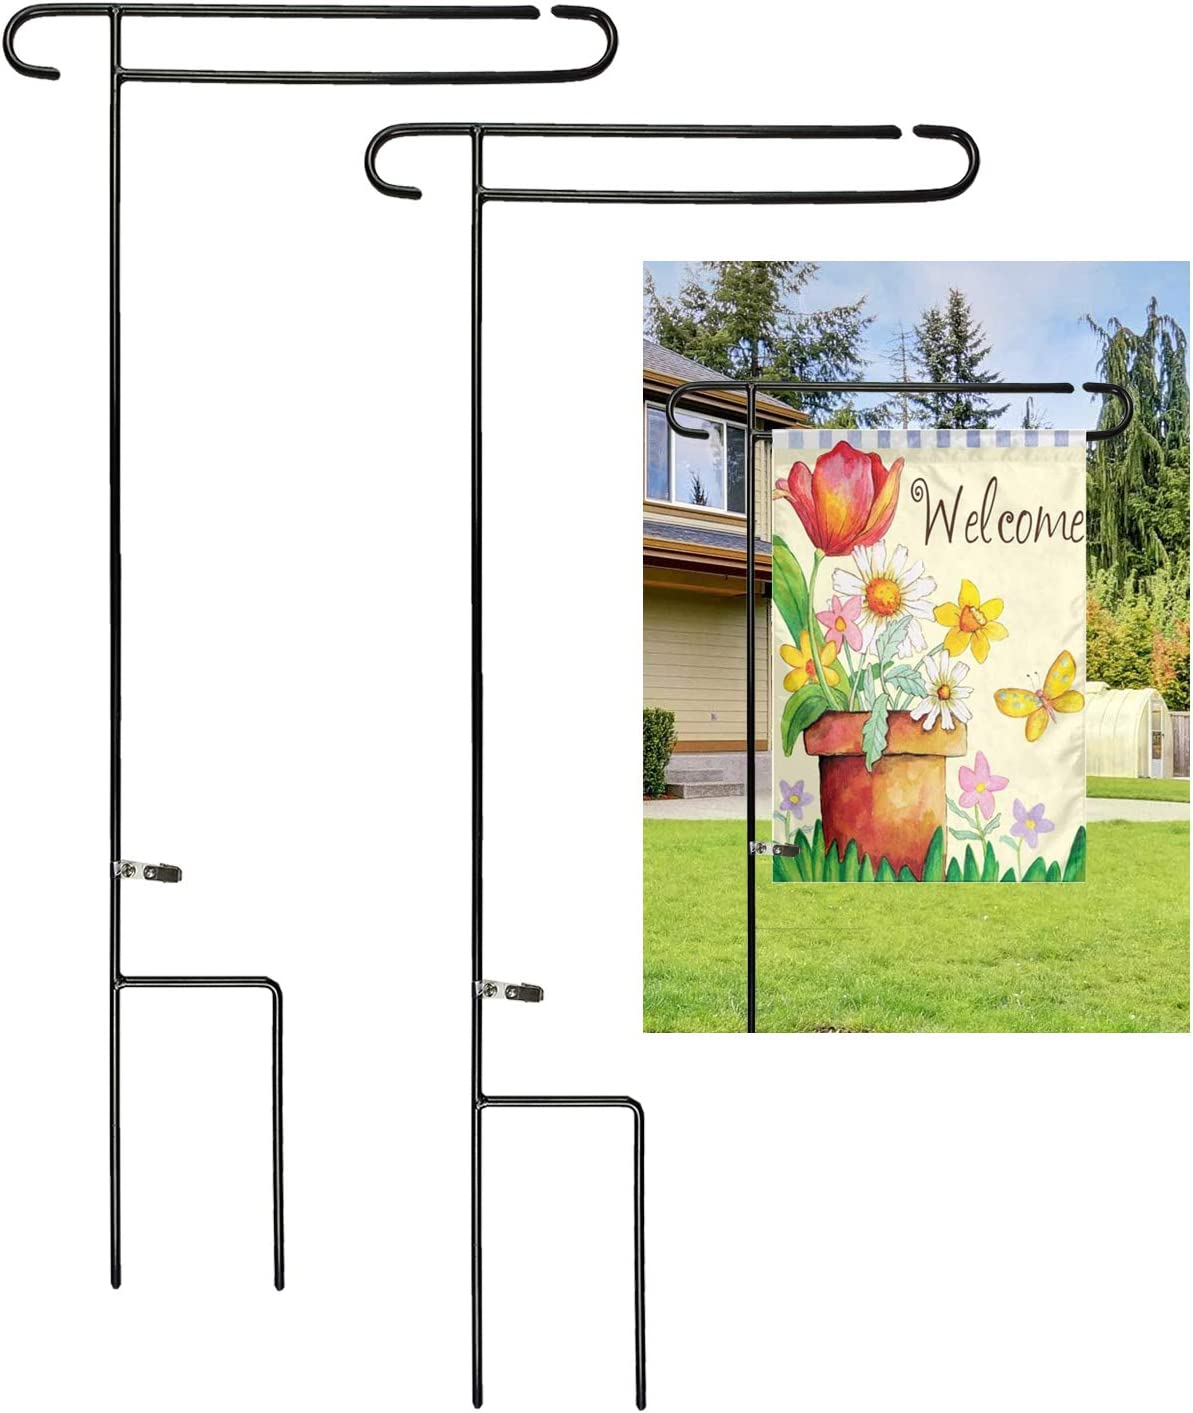 Luckupper 2 Packs Garden Flag Holder Stand One-Piece Heavy Duty Metal Yard Flag Pole for Outdoor Decorative Flags 12.5 X 18 Prime with Free Clip,Black